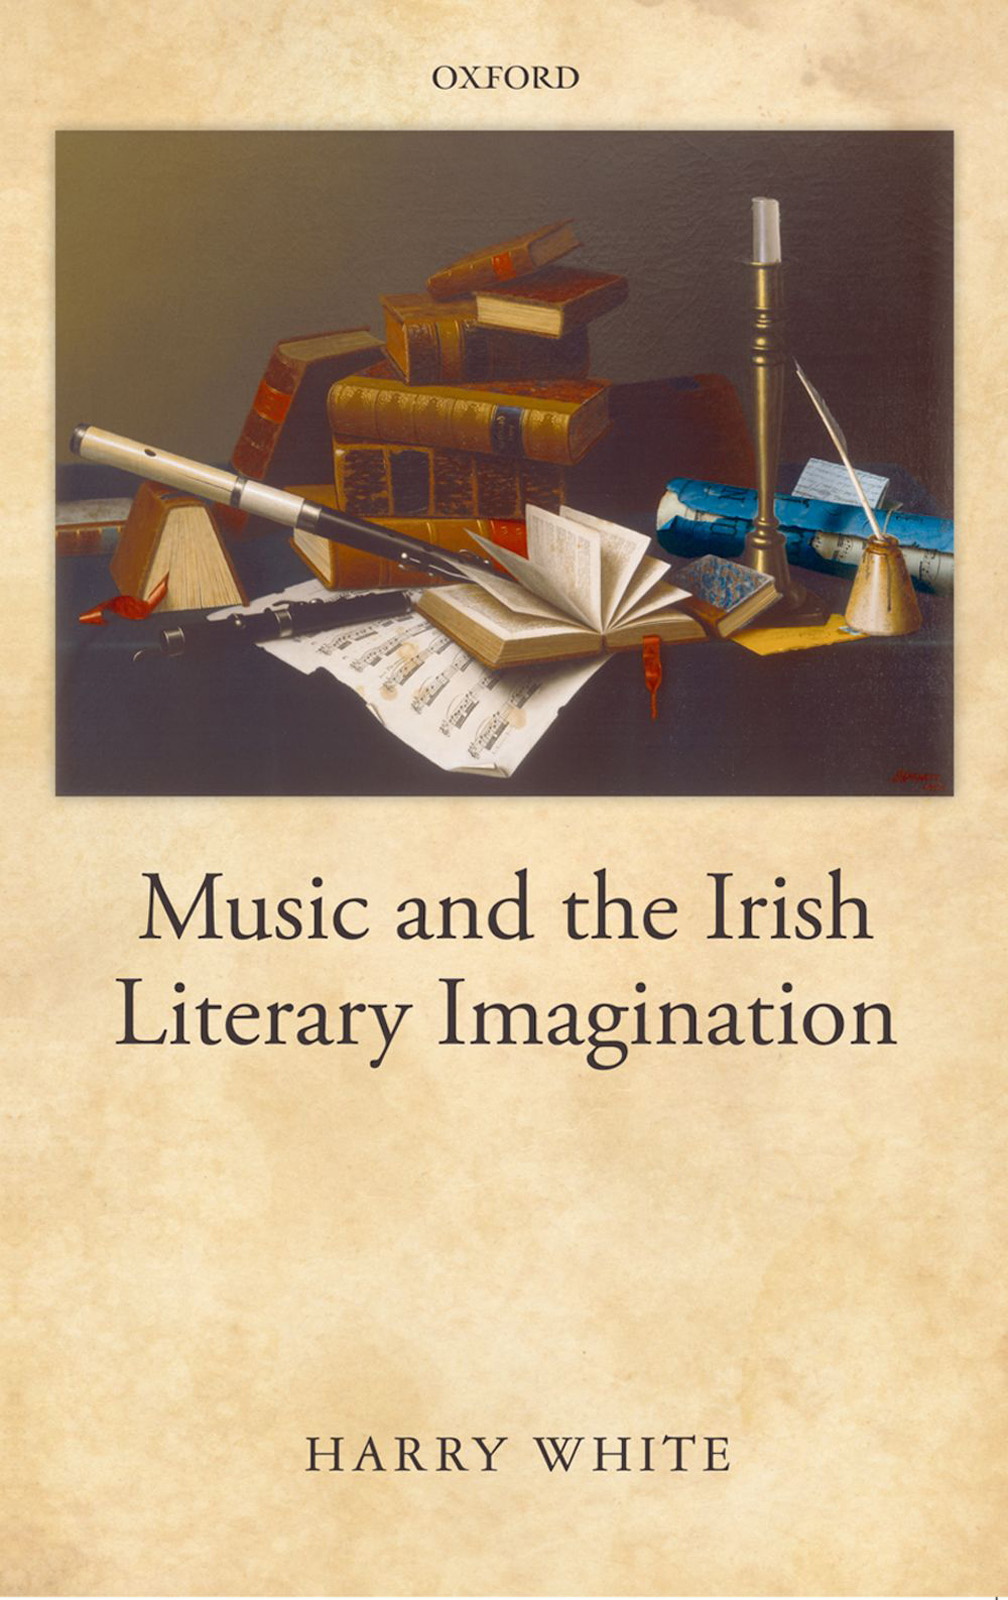 Music and the Irish Literary Imagination